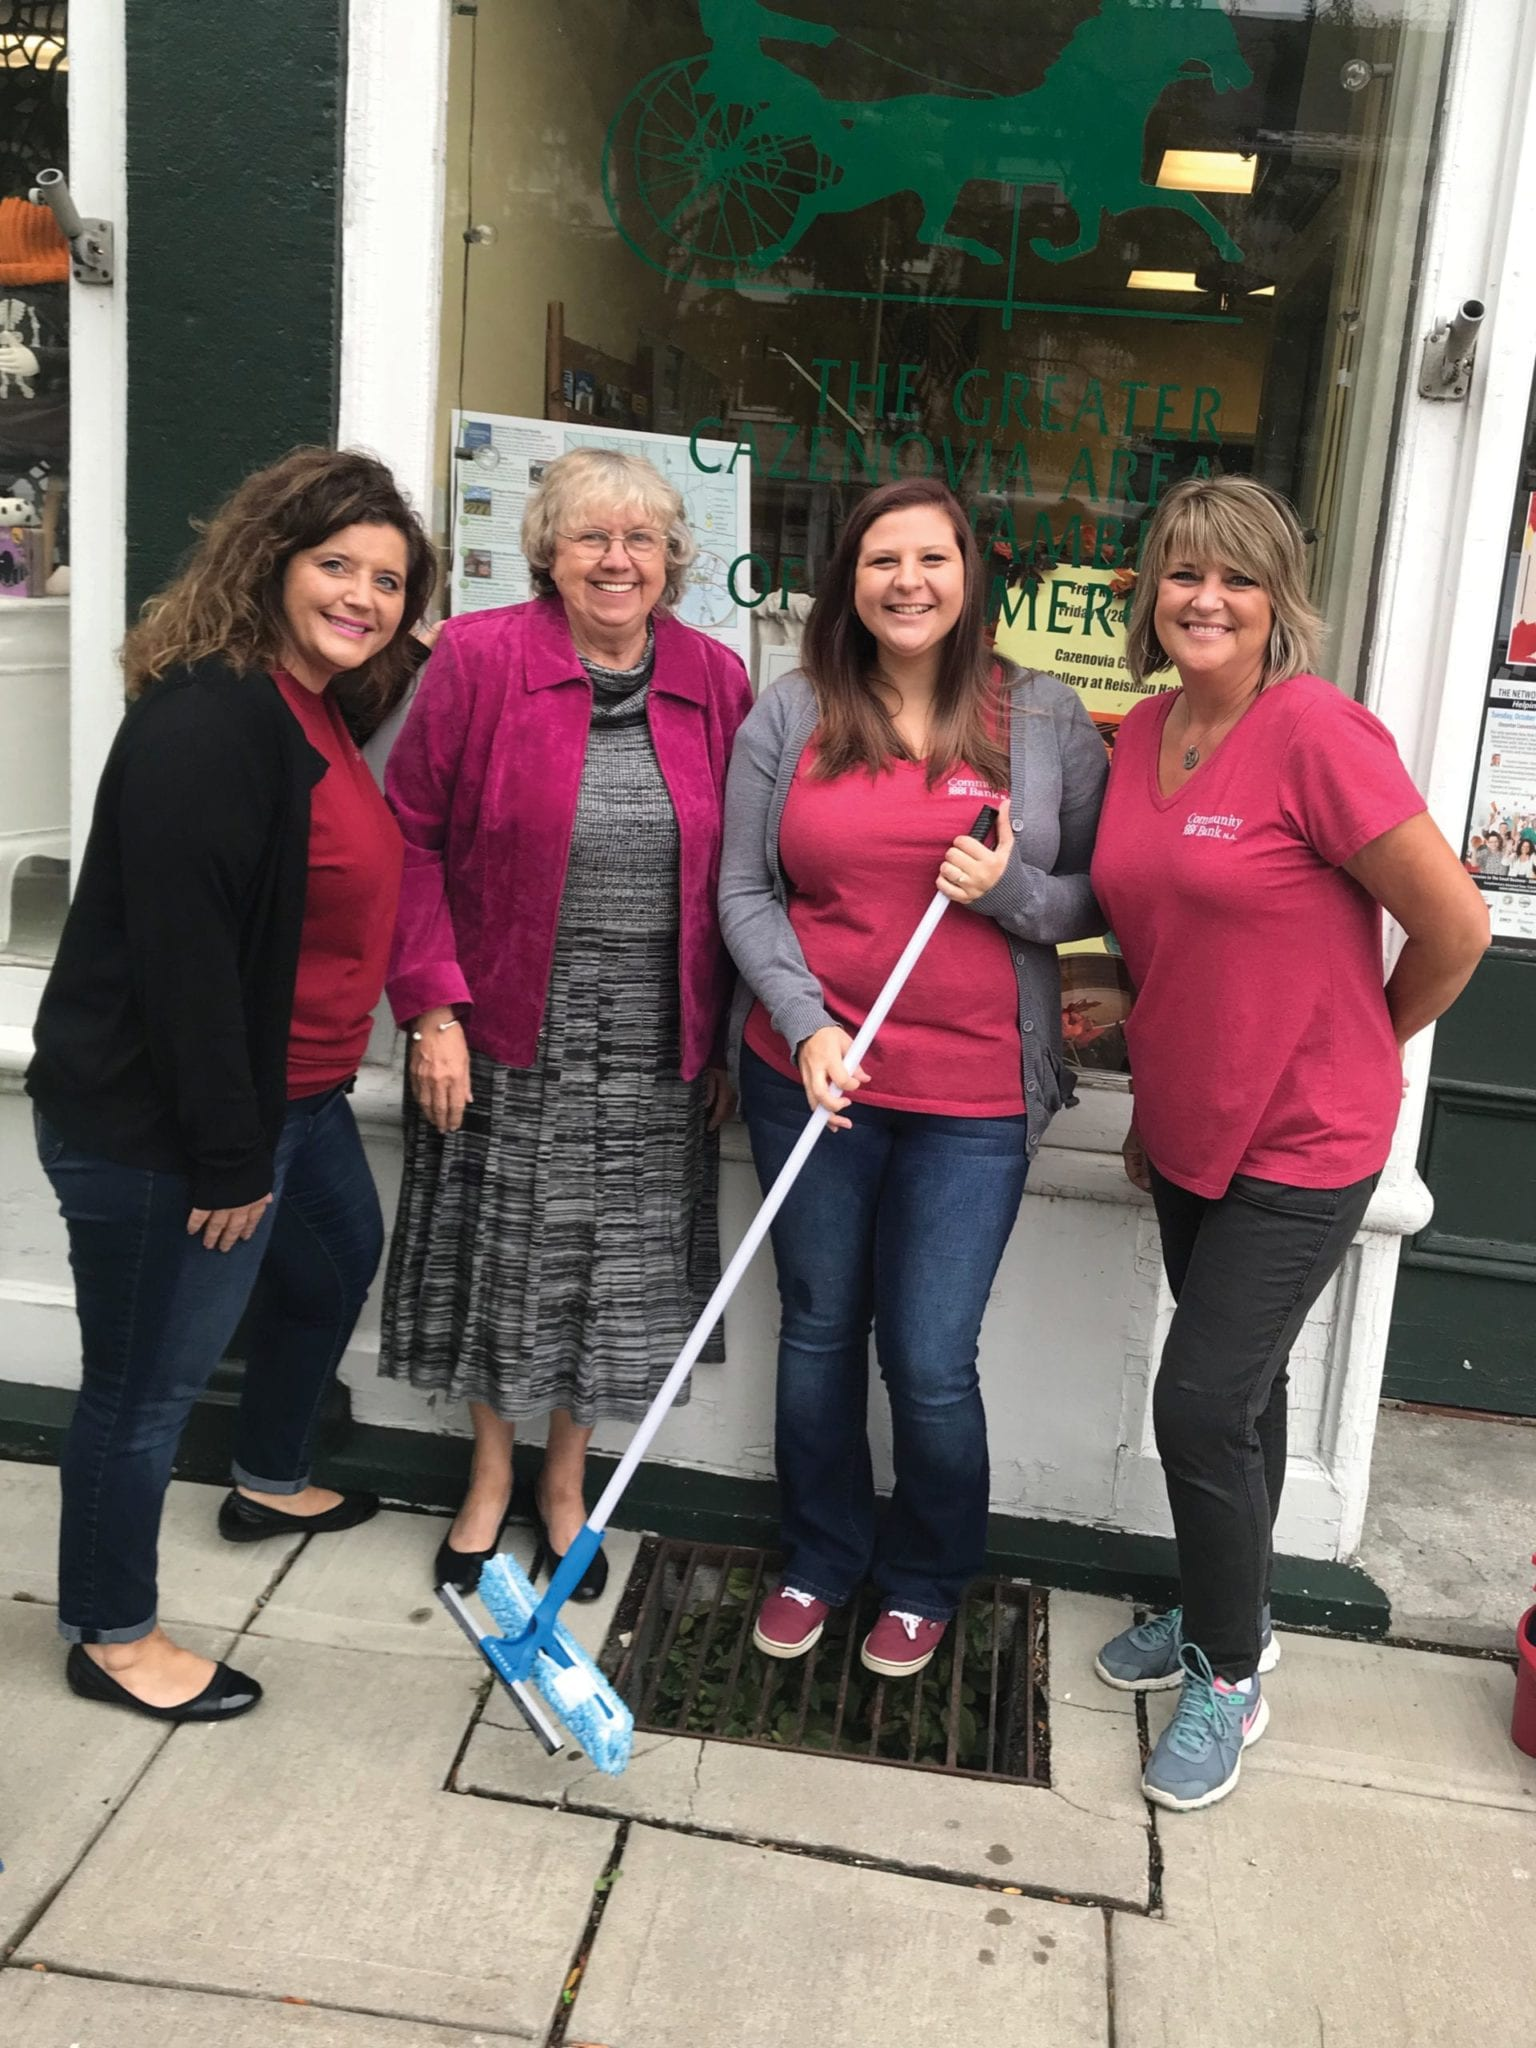 Community Bank N.A.: Committed to community